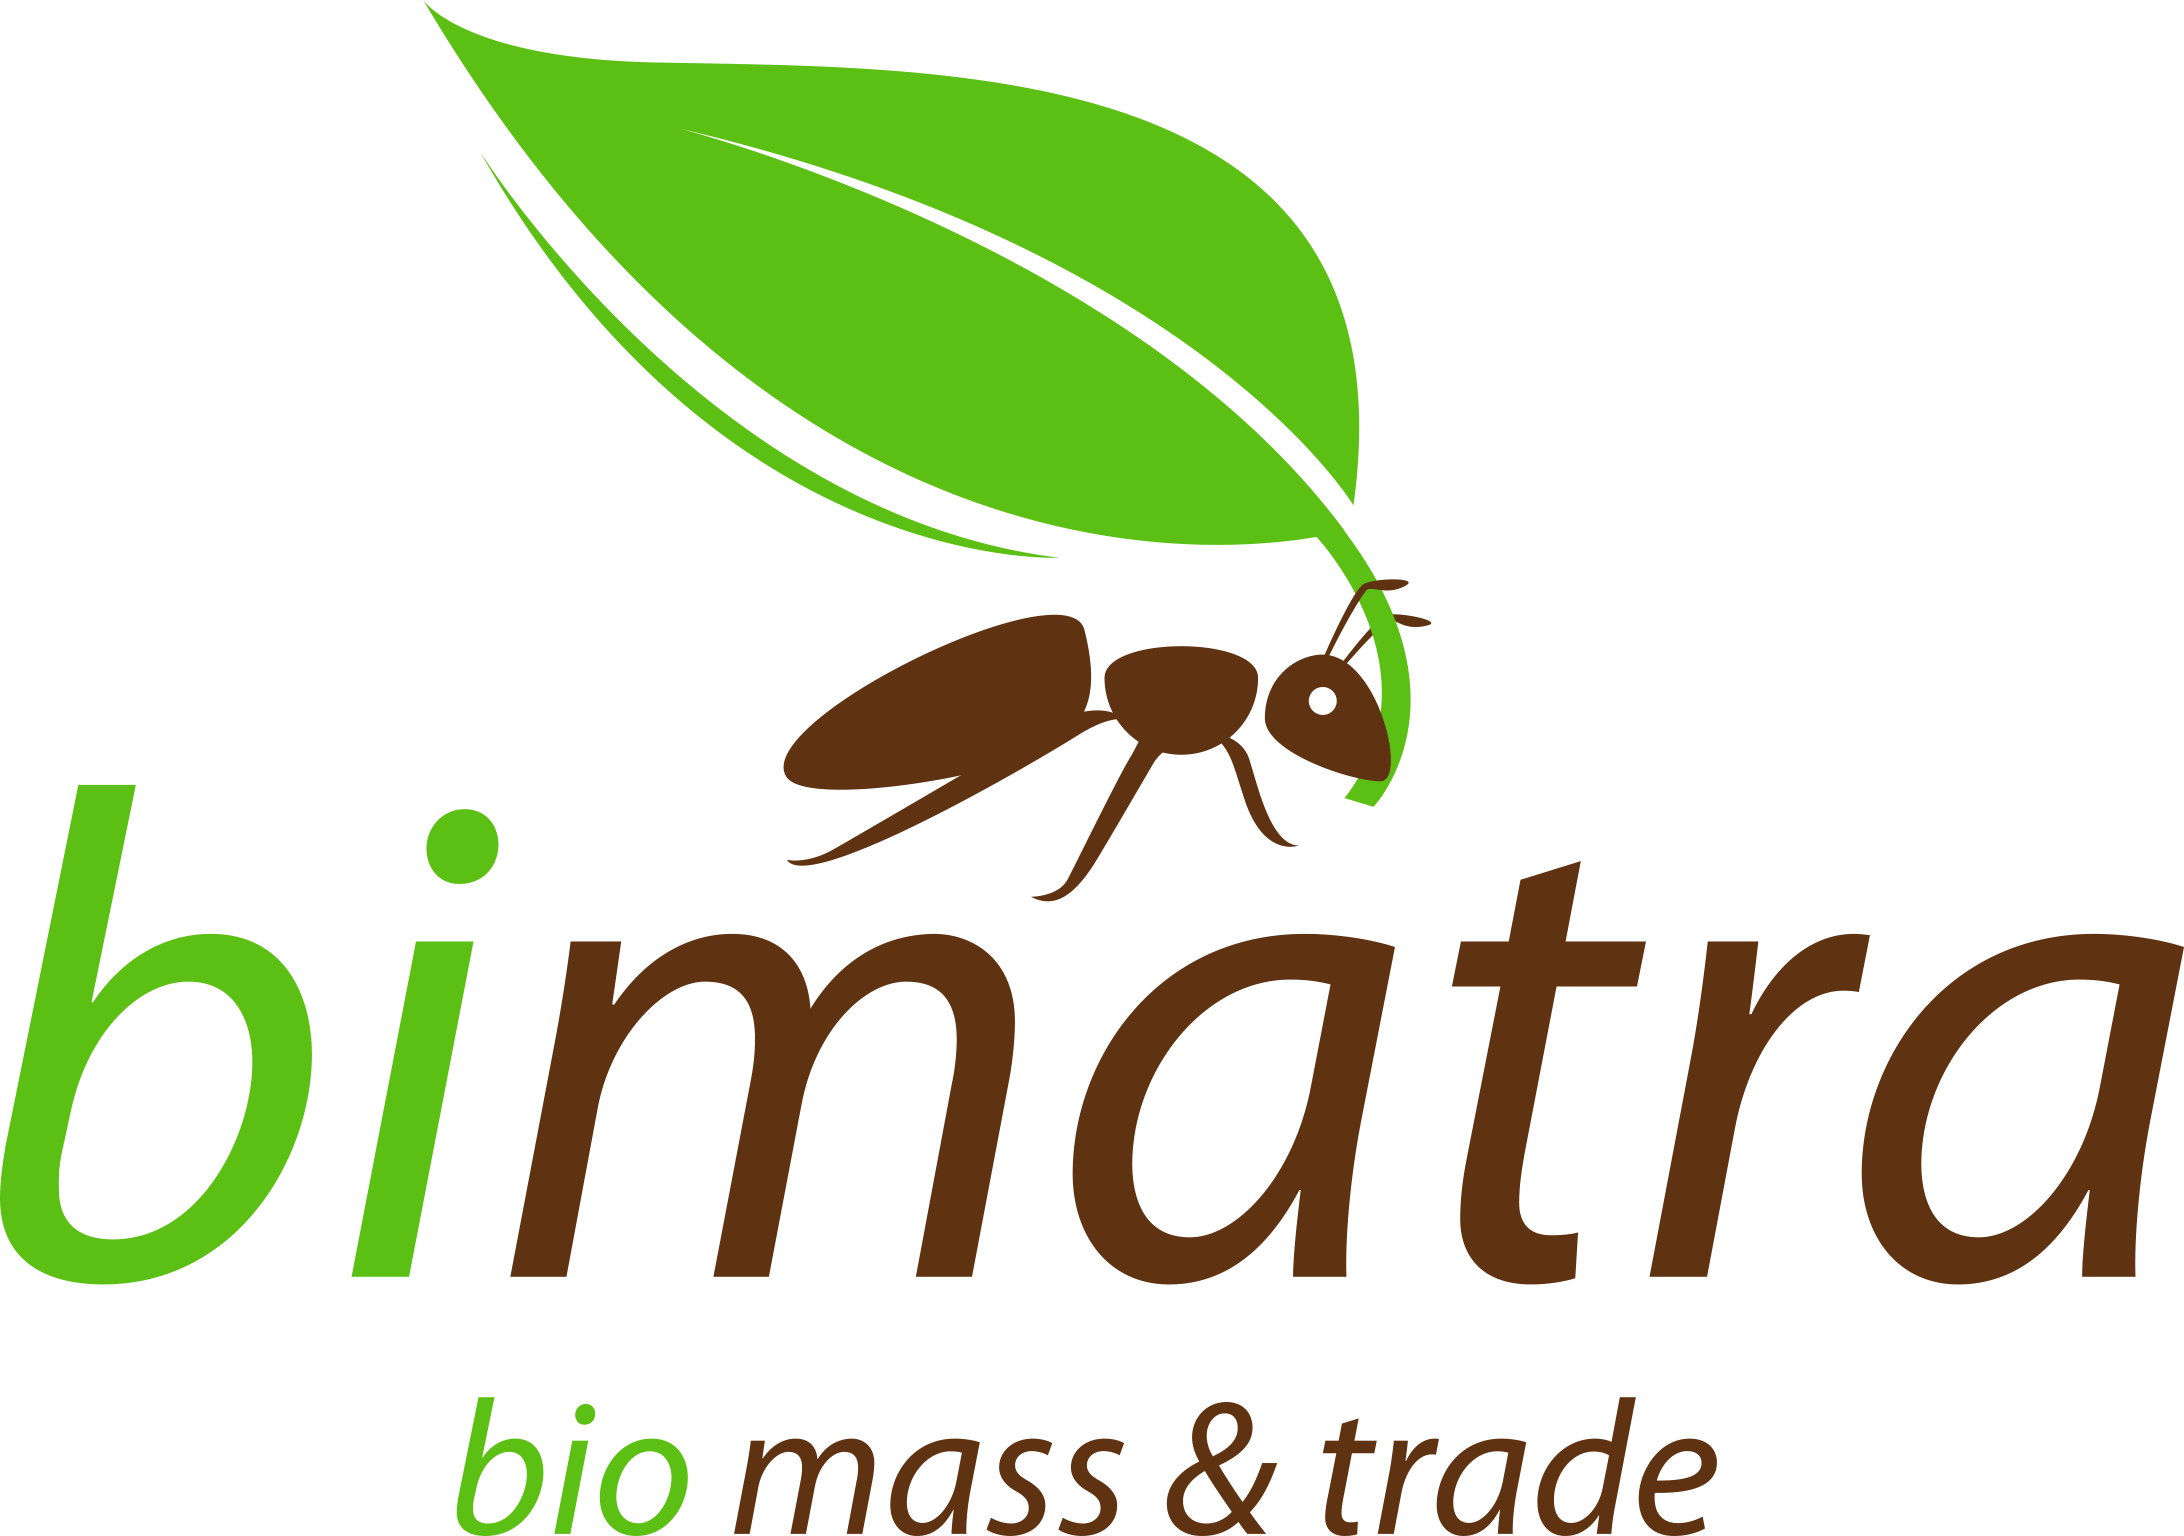 bimatra - bio mass & trade https://www.bimatra.be/nl